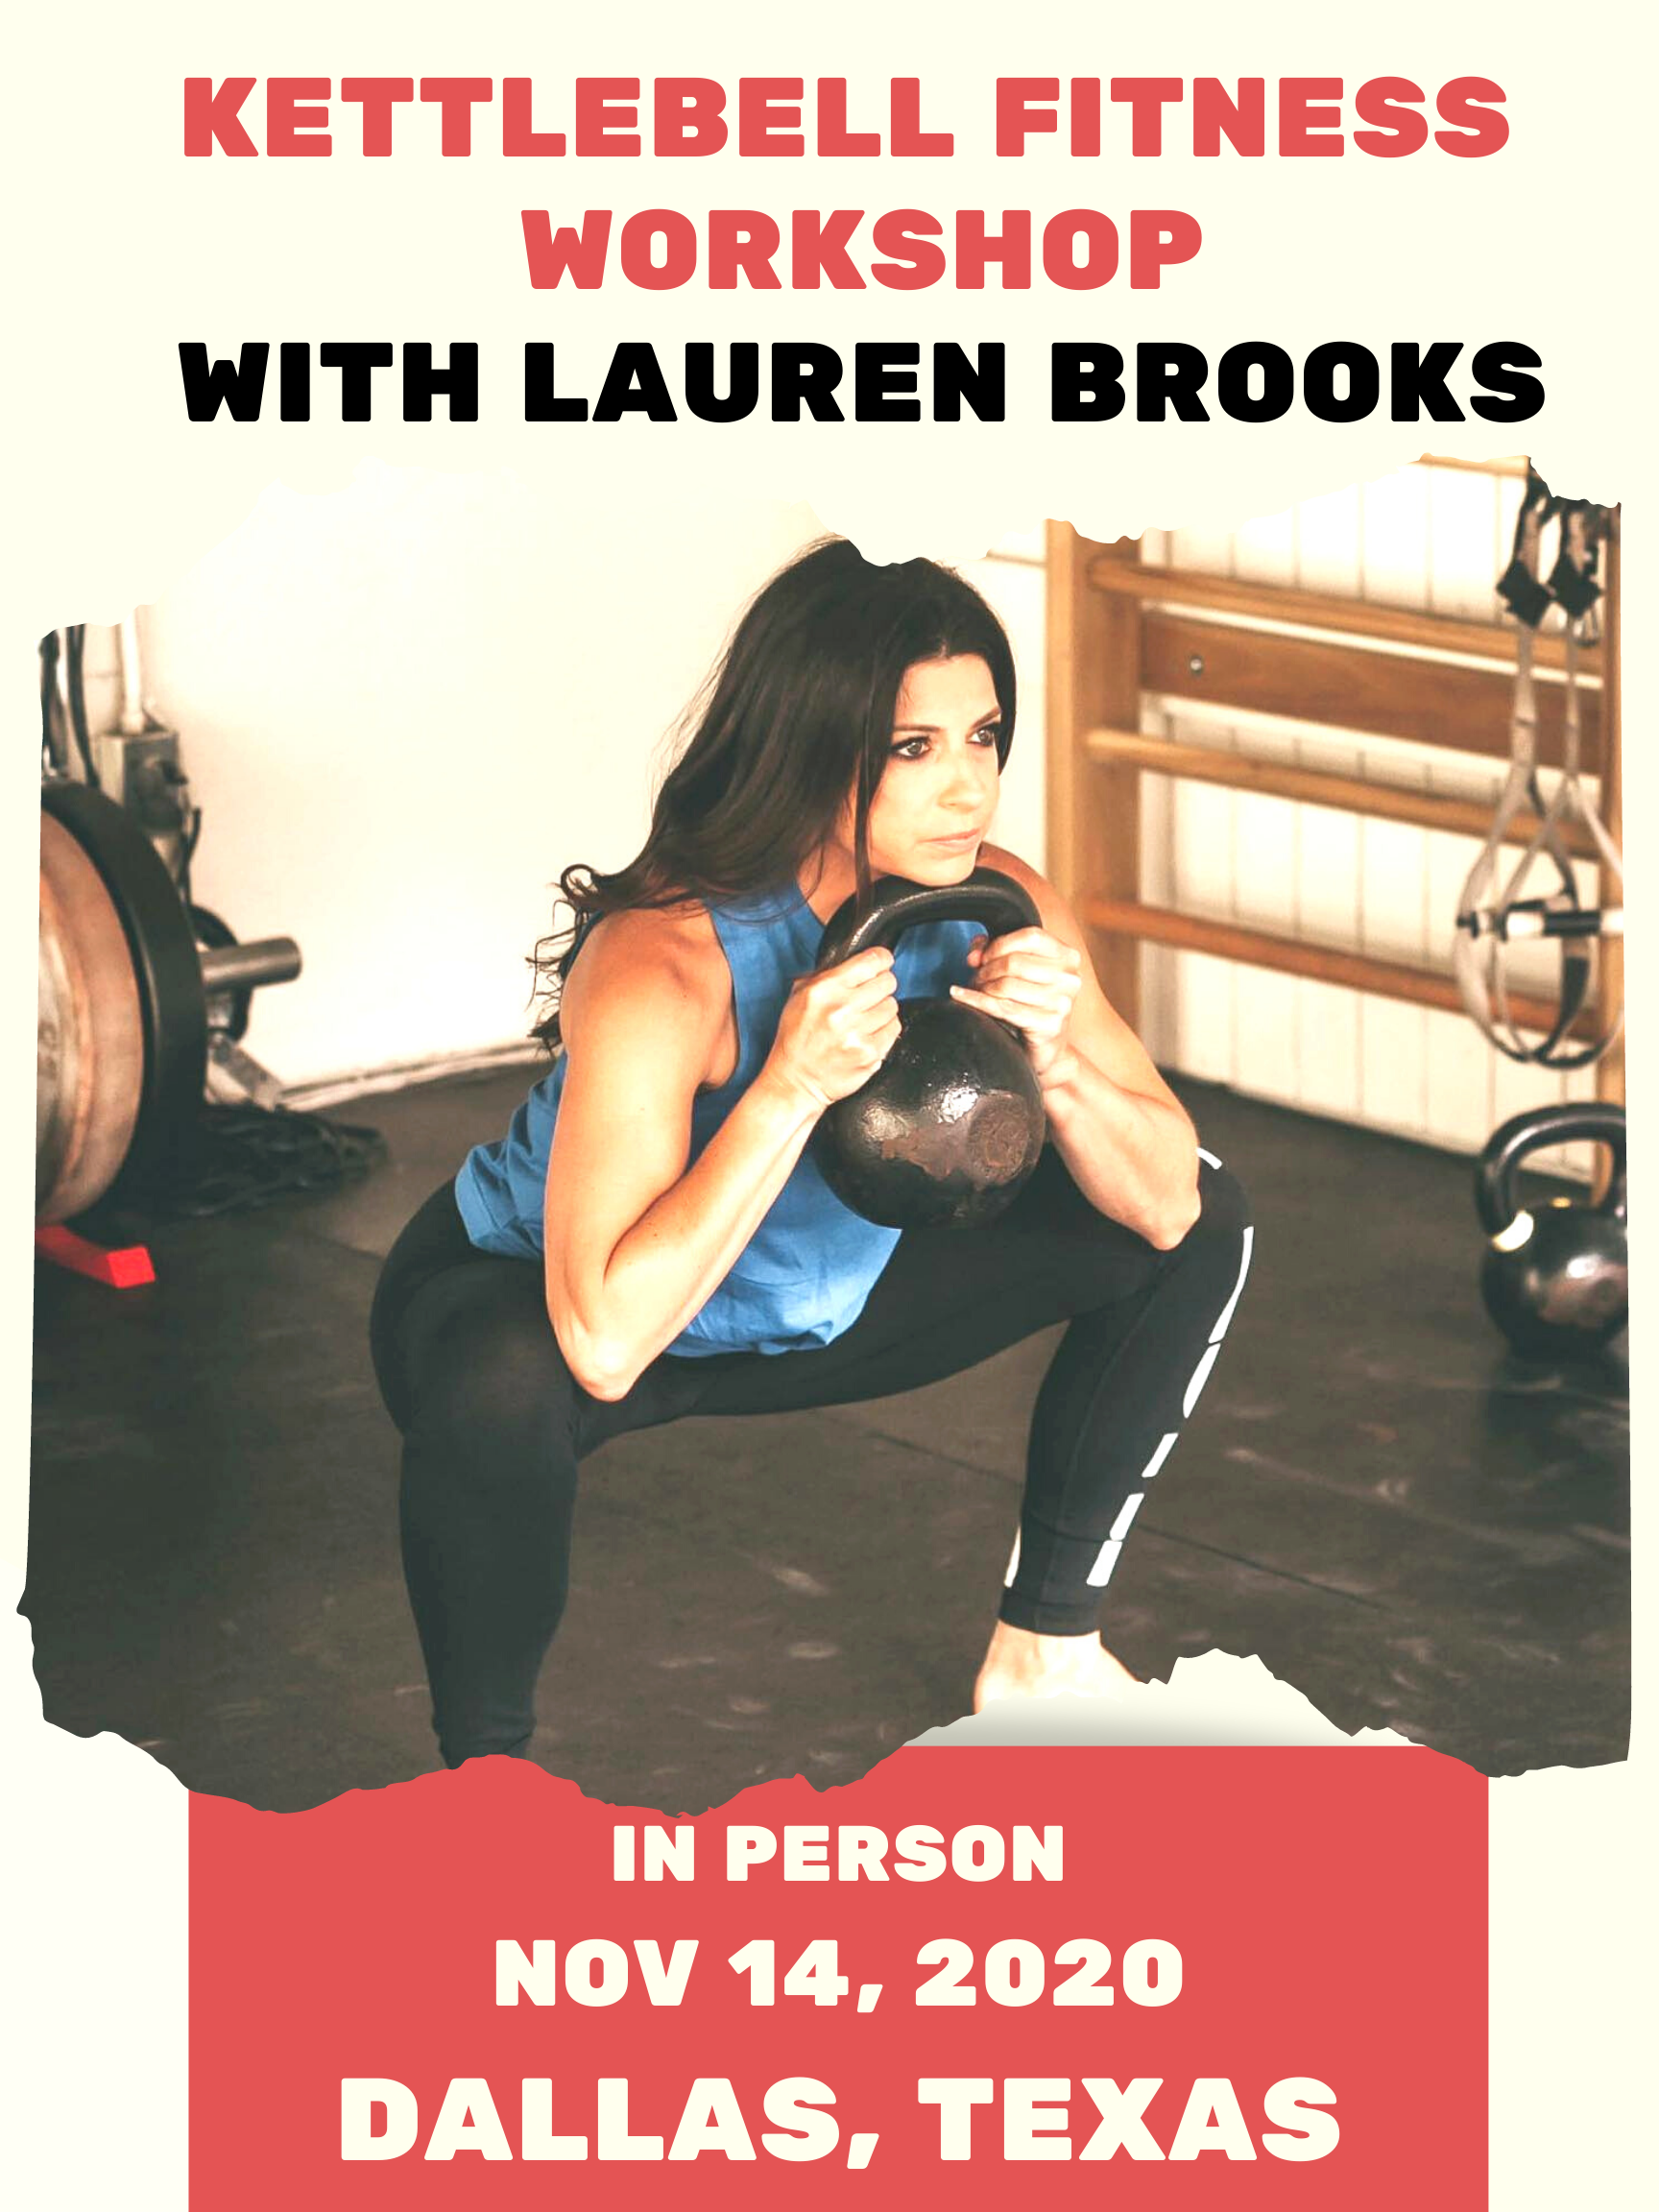 Kettlebell Fitness Workshop - Dallas, Texas - IN PERSON - November 14, 2020